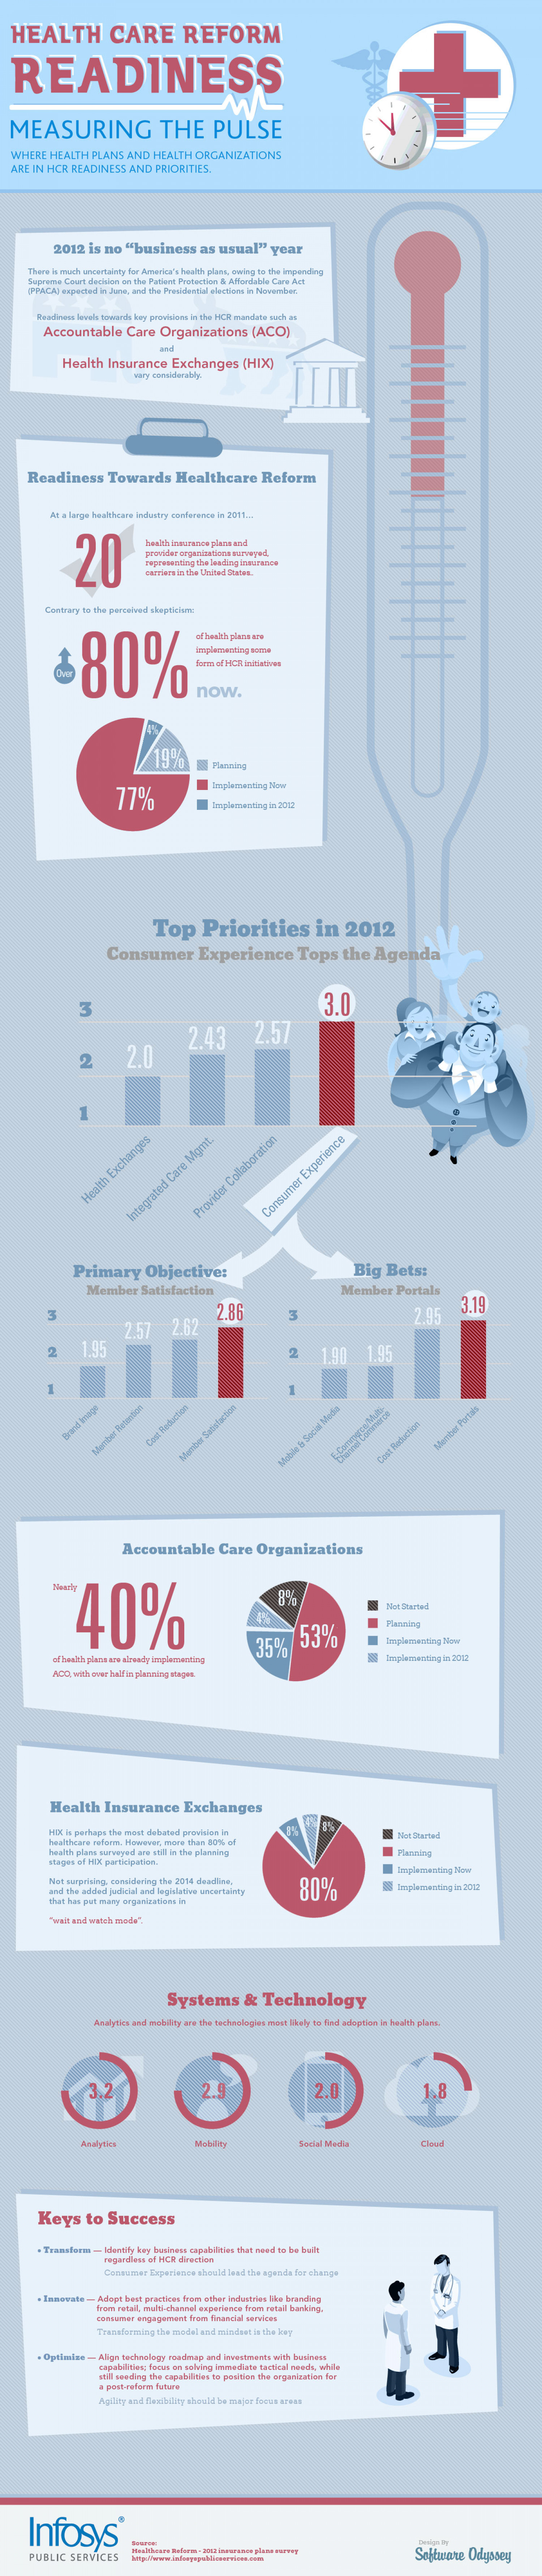 Health Care Reform Readiness Infographic